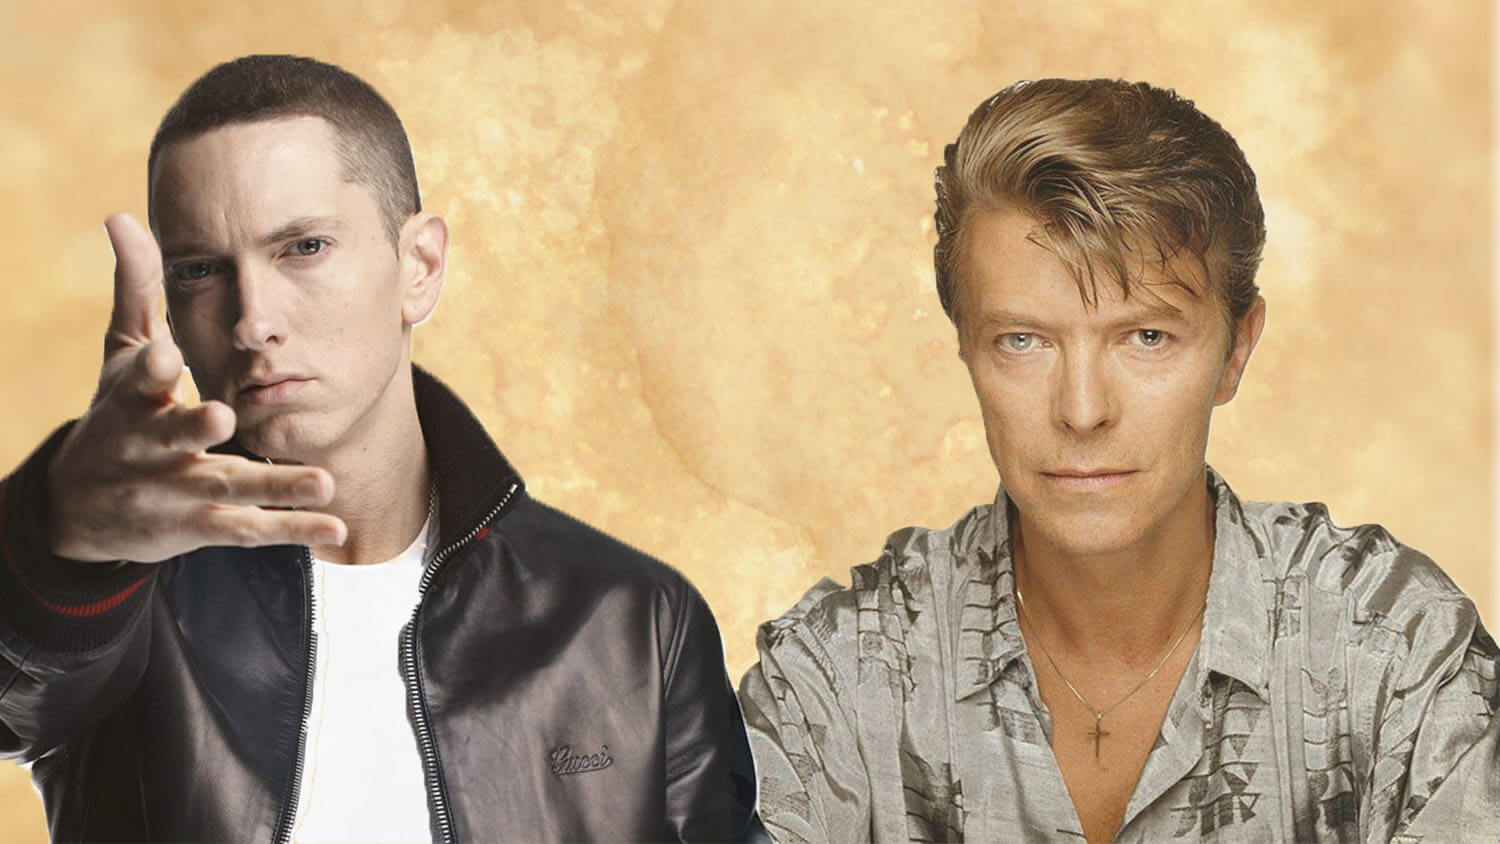 David Bowie and Eminem Feature In Moby's Memoir Benefitting Farm Animals